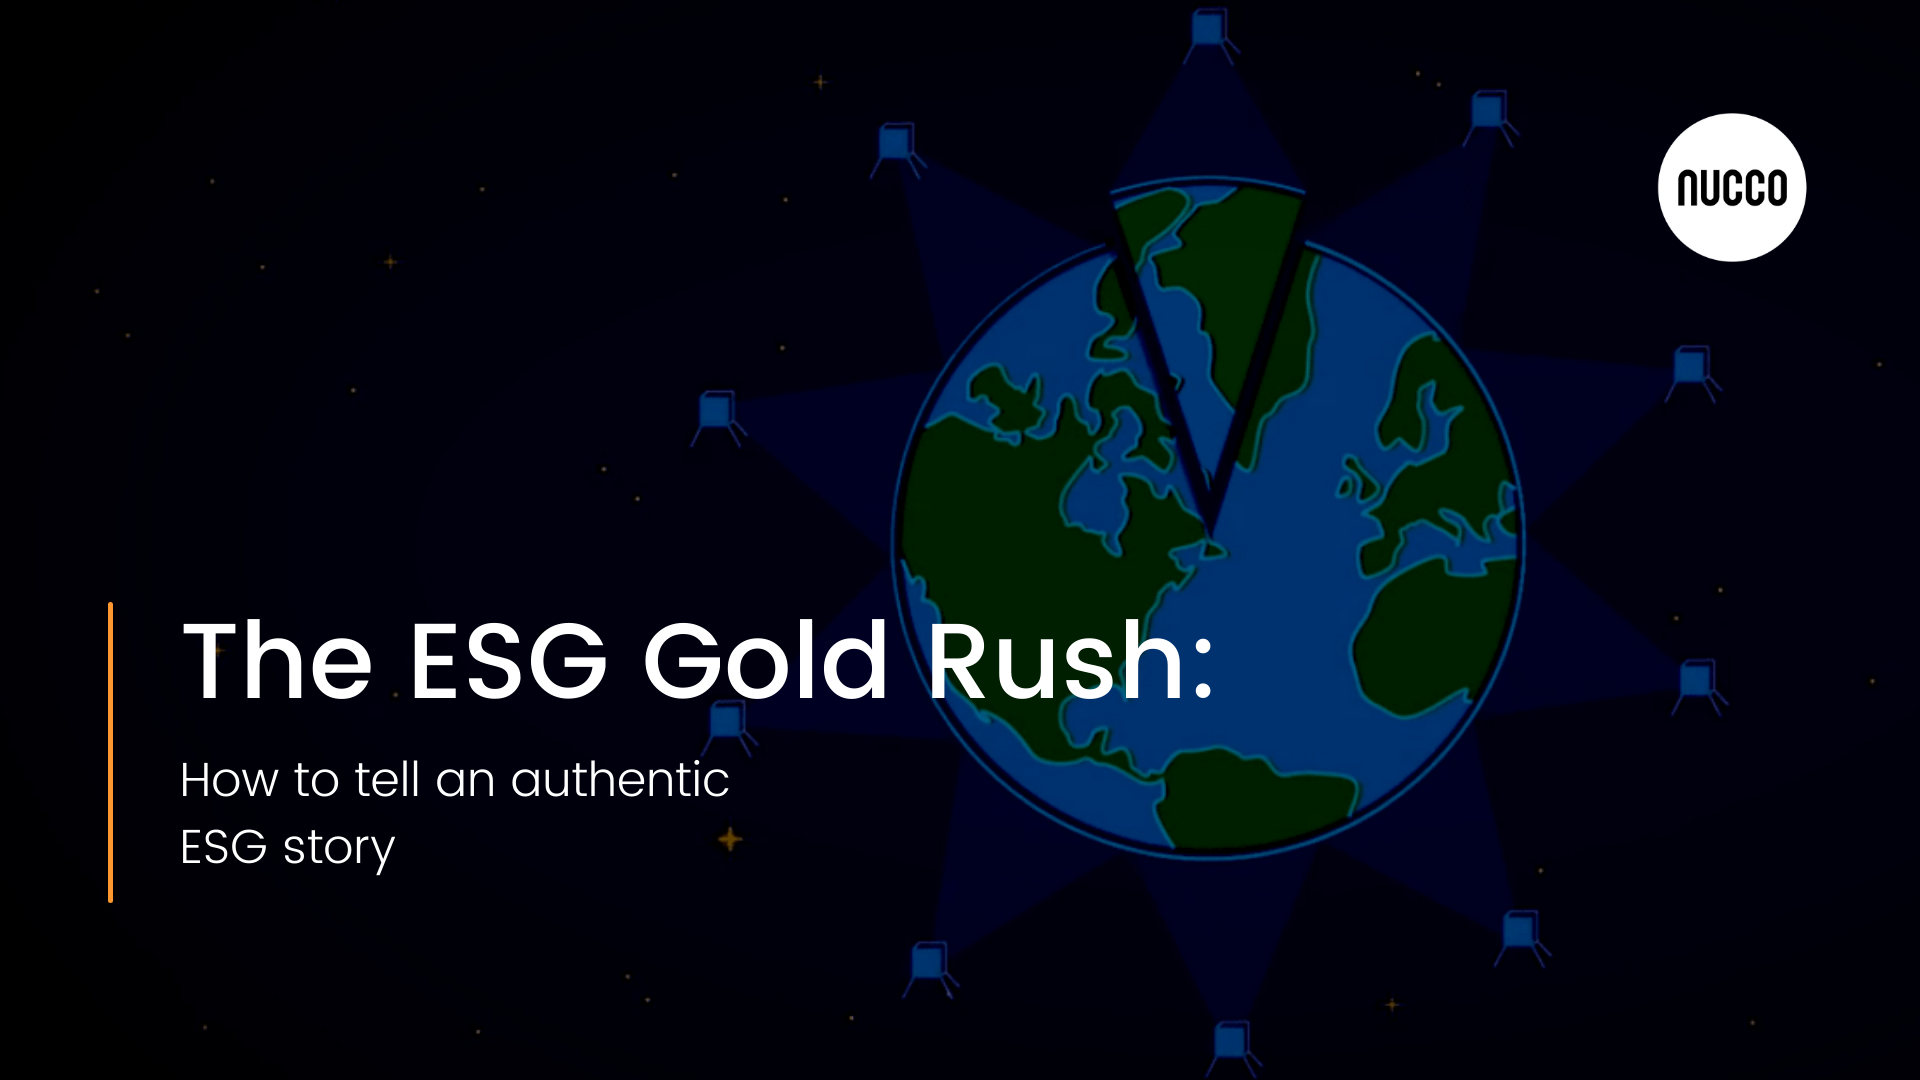 The ESG Gold Rush: How to Tell an Authentic ESG Story